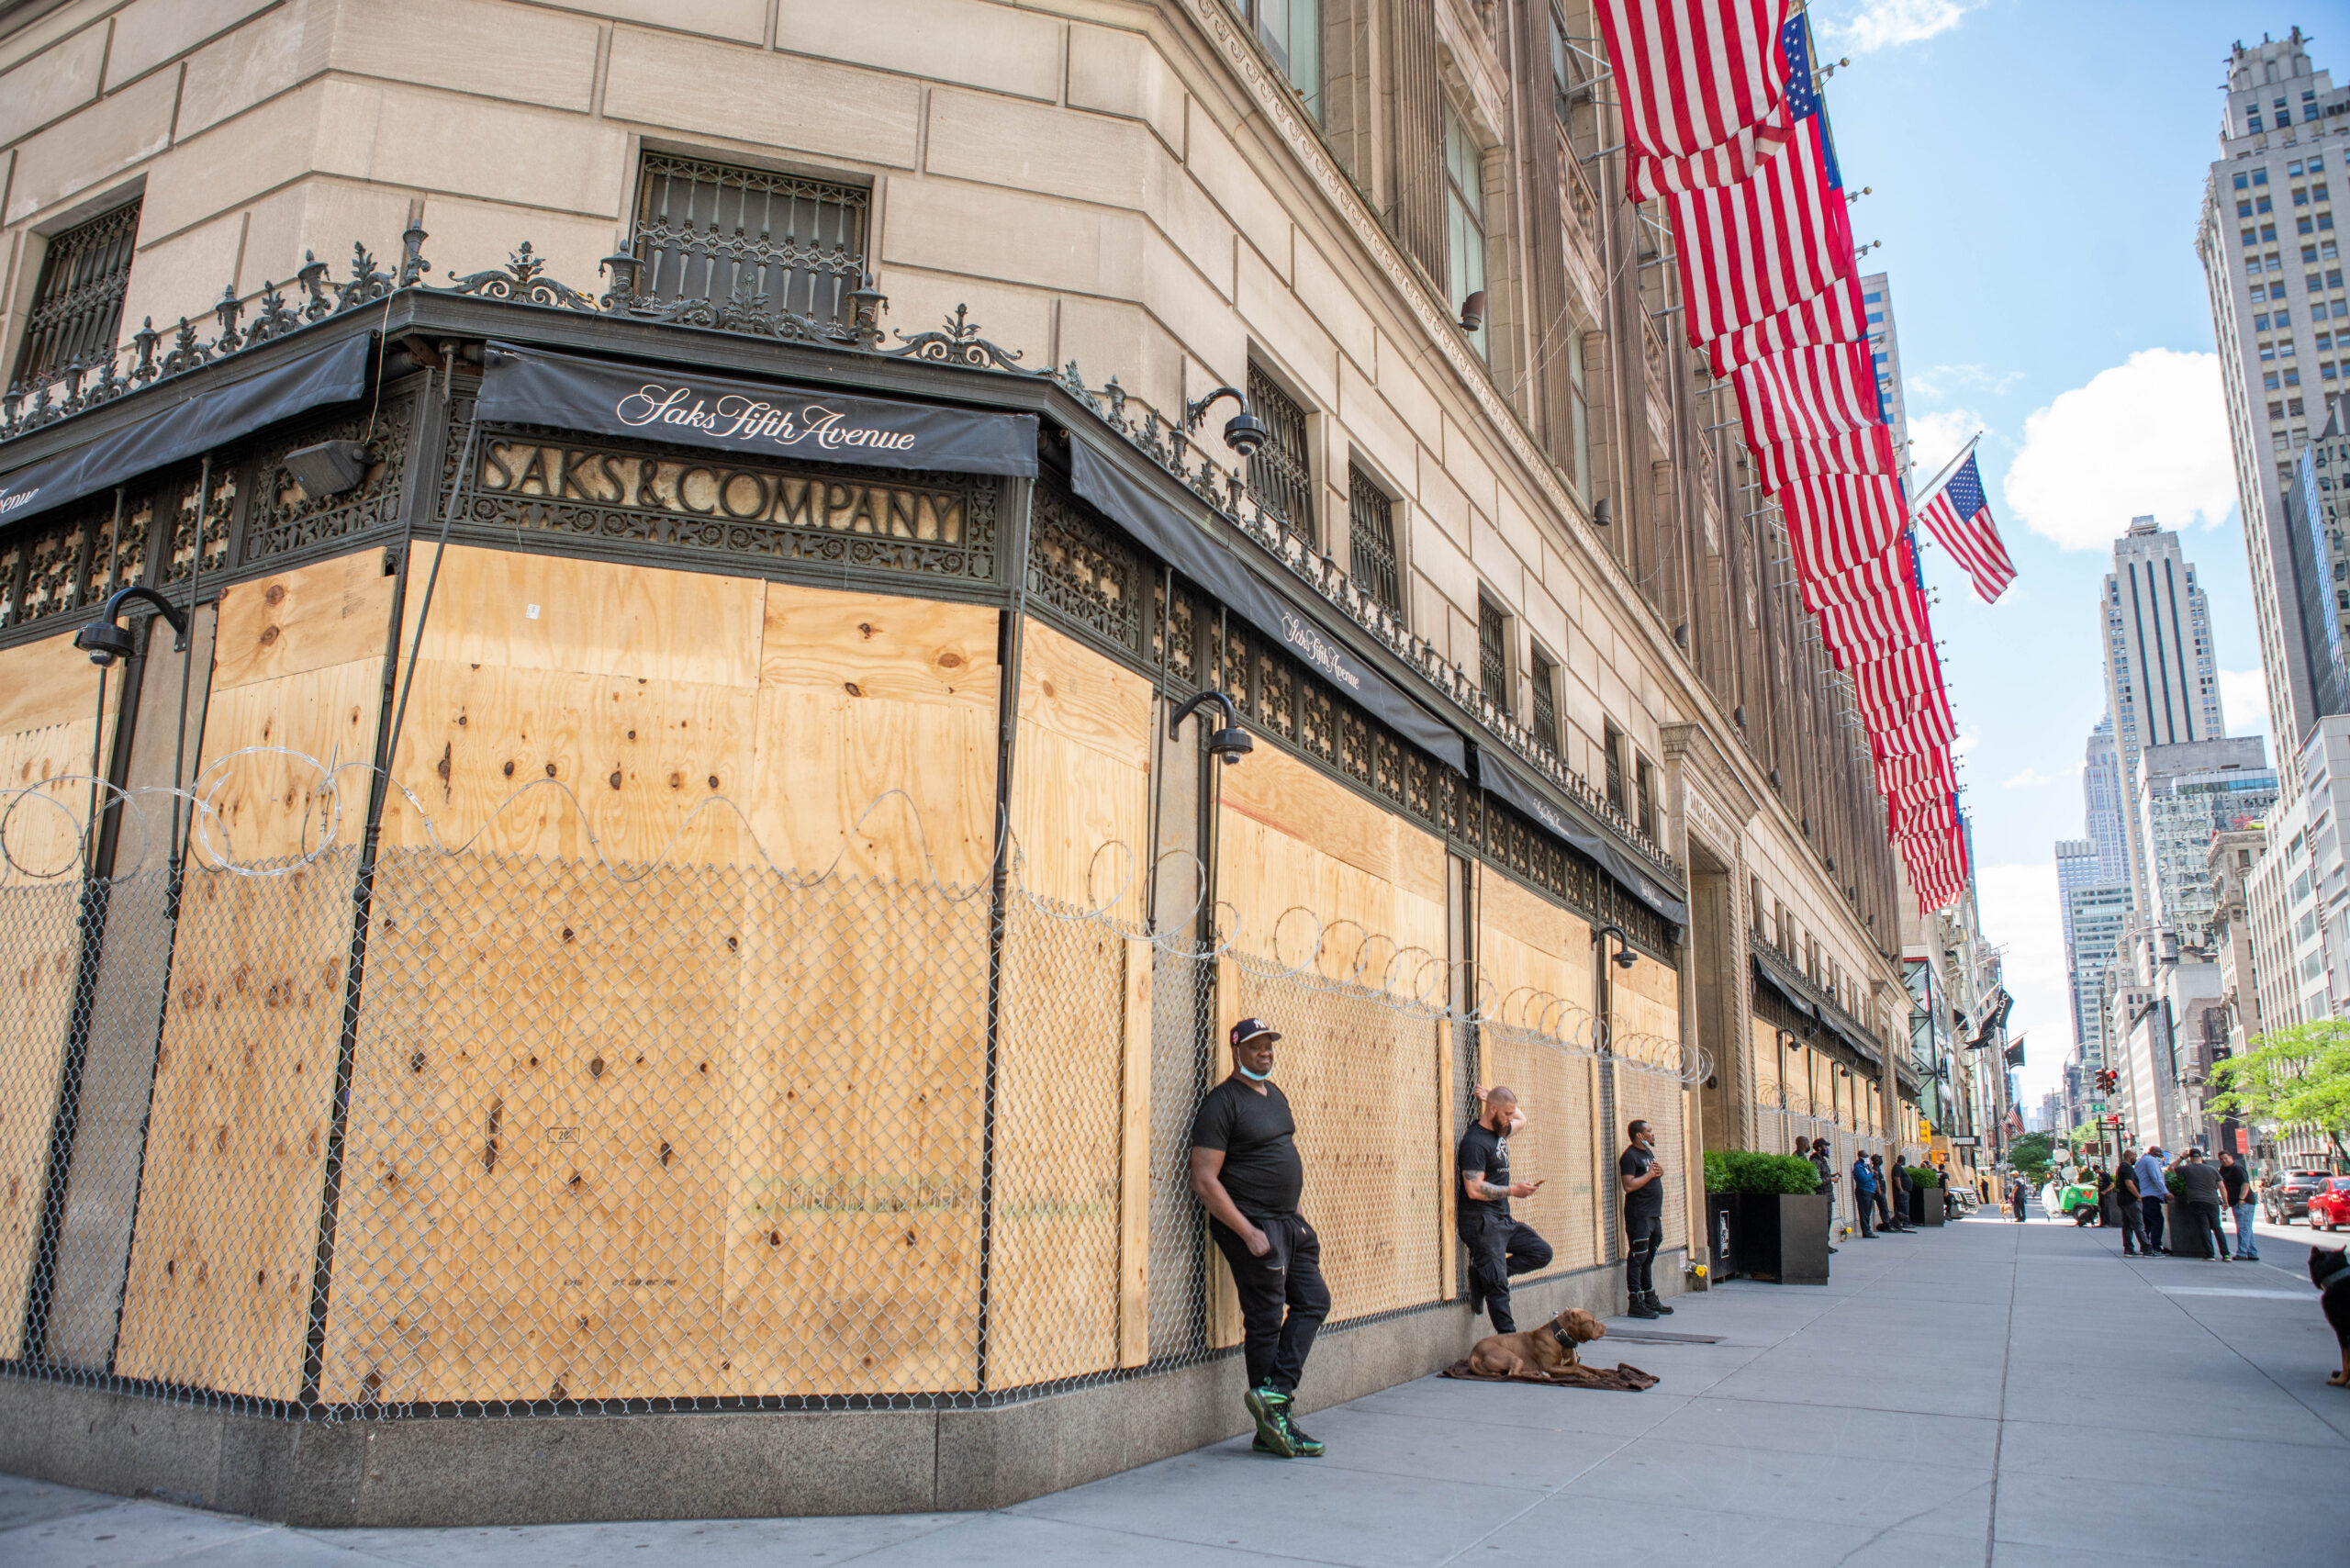 Retailer Saks Fifth Avenue added private security, fencing and barbed wire ahead of a Black Lives Matter protest, June 7. 2020. (Anthony Quintano, CC BY 2.0, Wikimedia Commons)